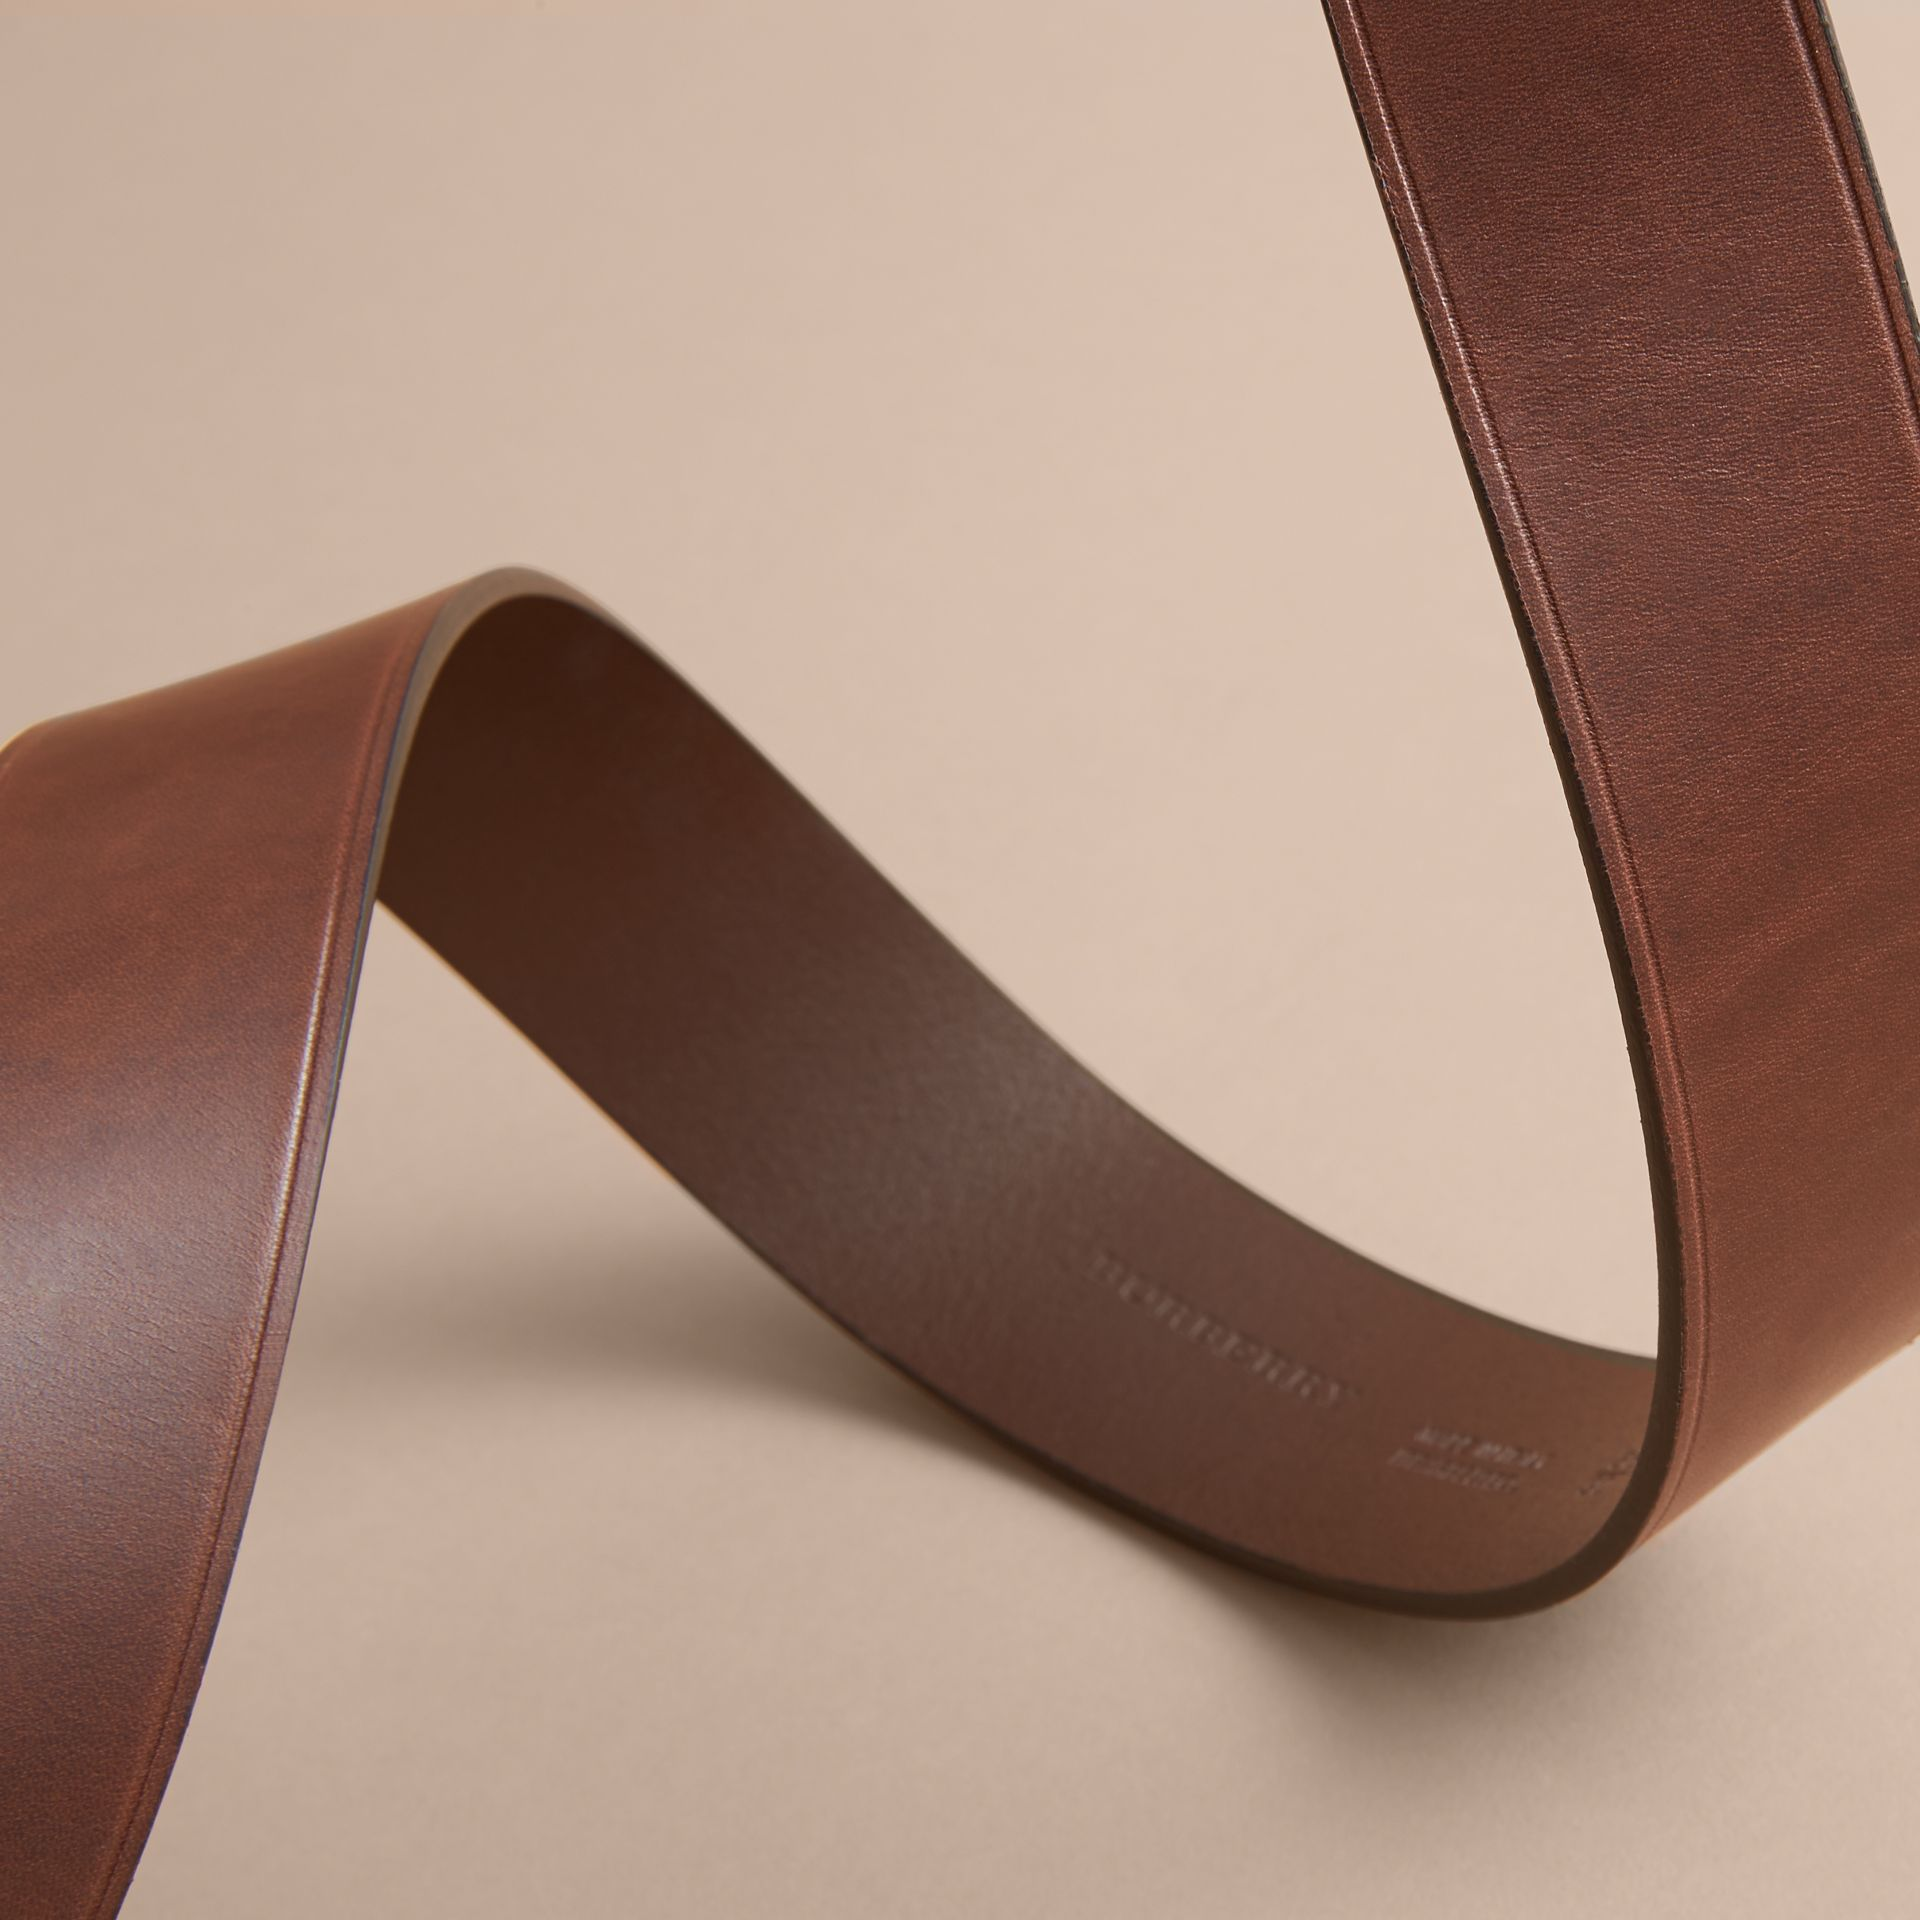 Brass Buckle Leather Belt in Auburn - Men | Burberry Australia - gallery image 4